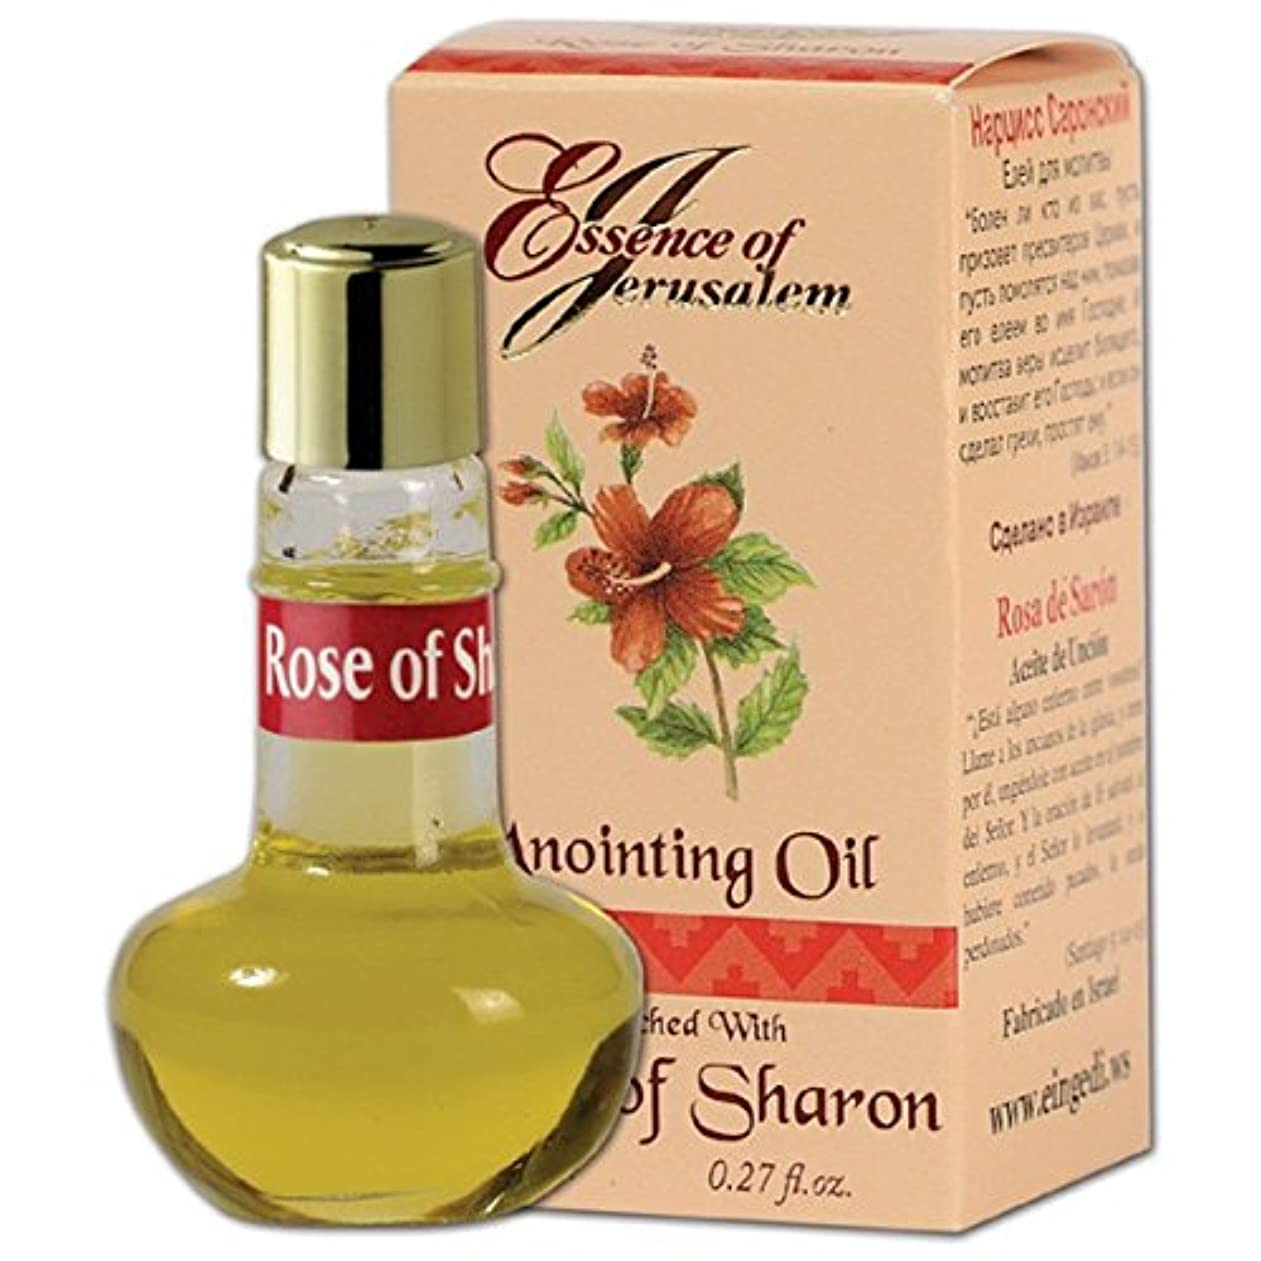 はぁ最終的にと闘うEssence of Jerusalem Anointing Oil Enriched with Biblicalスパイス0.27 FL OZ byベツレヘムギフトTM